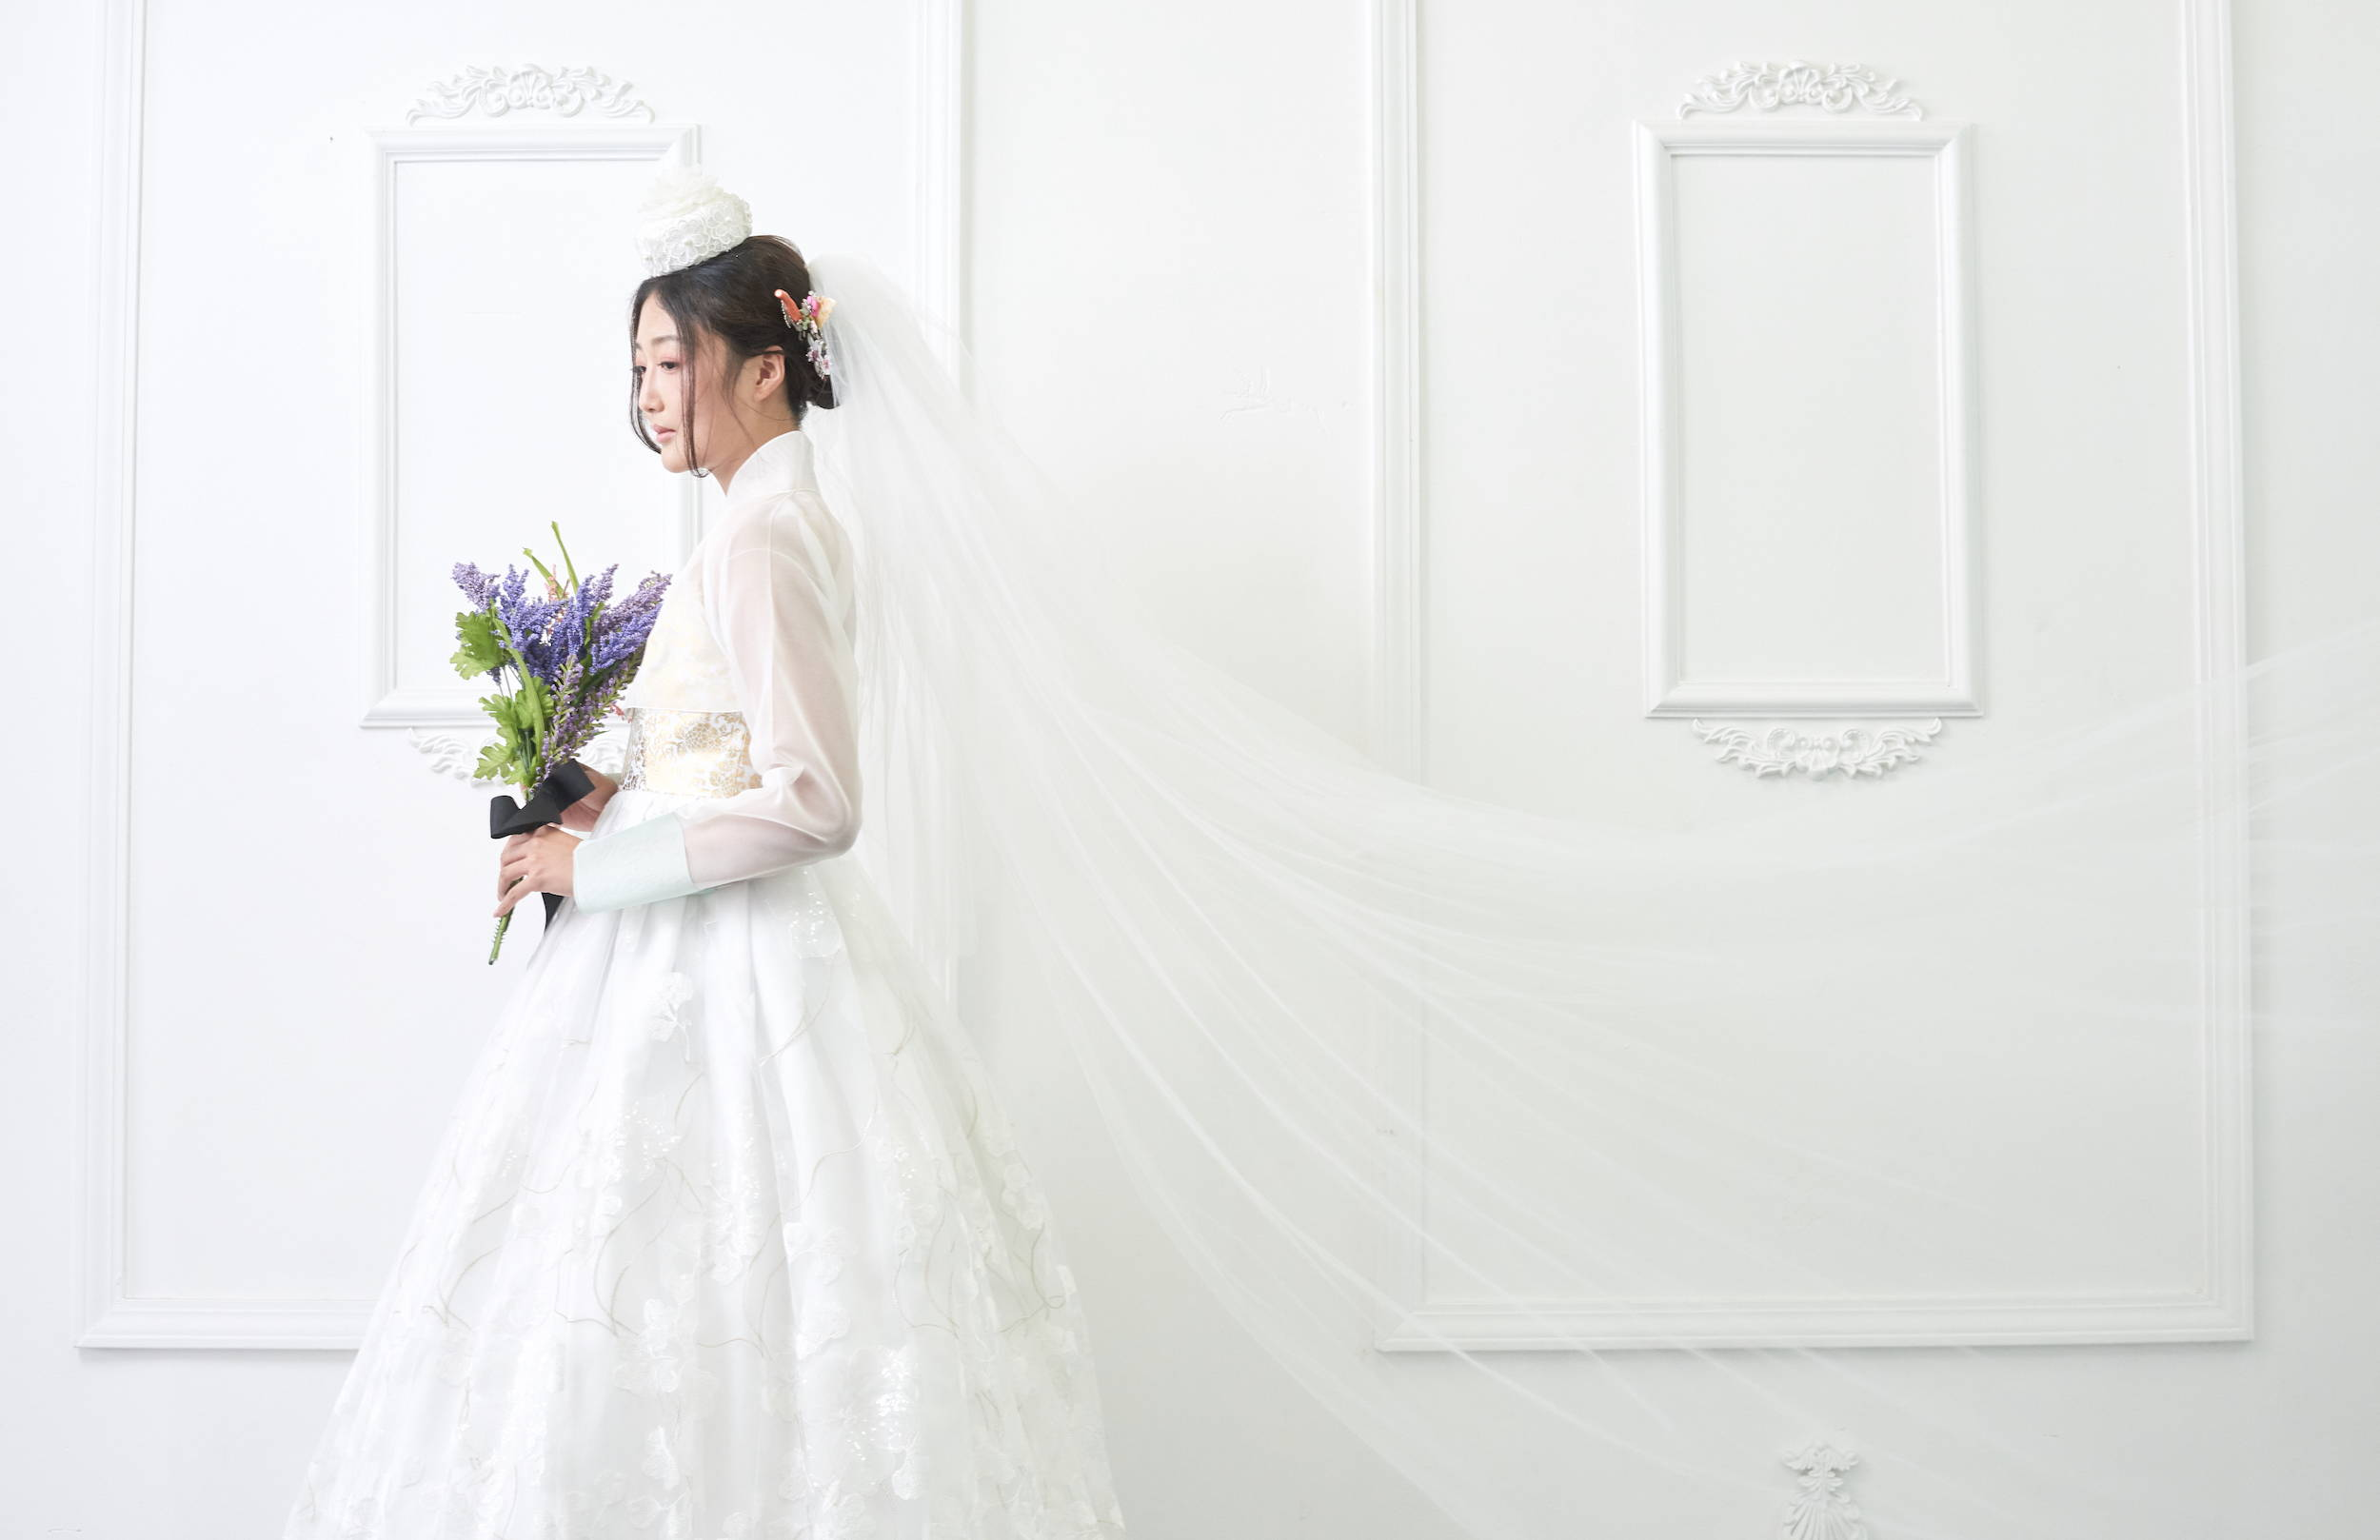 BRIDAL HANBOK WEDDING DRESS WITH LACE ALINE GOWN